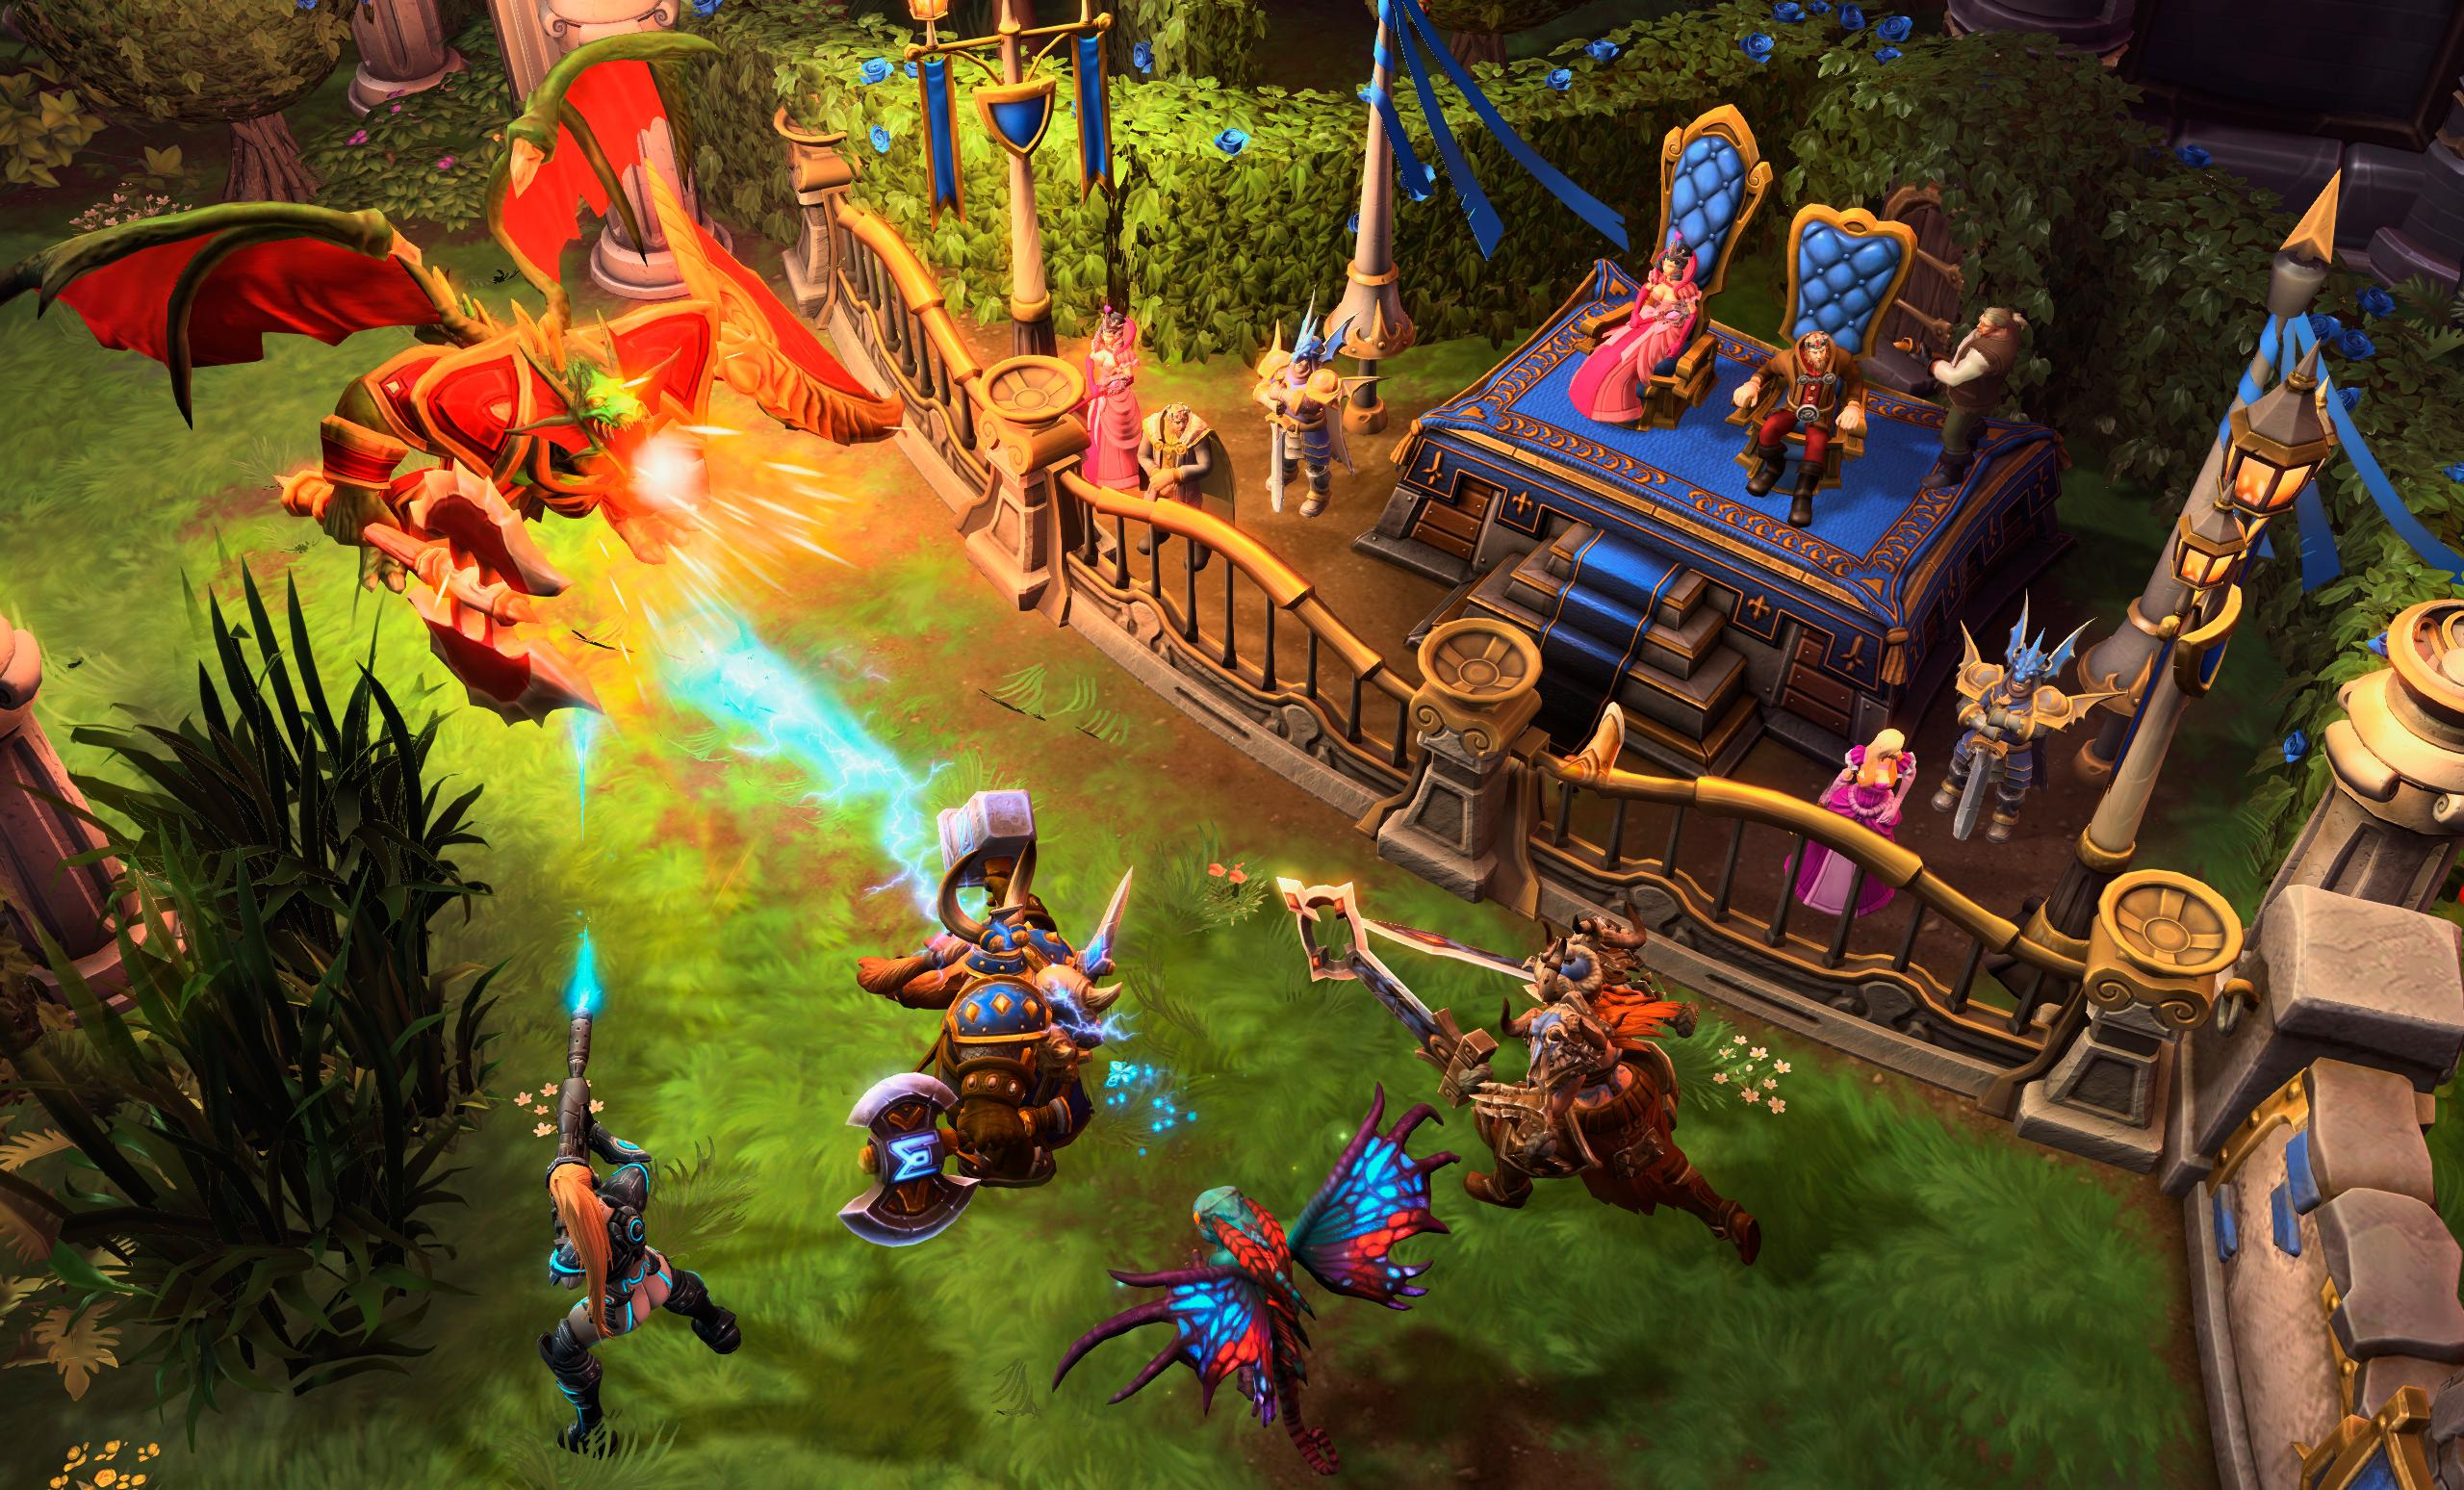 Amazon.com: Heroes of the Storm - PC/Mac: Video Games